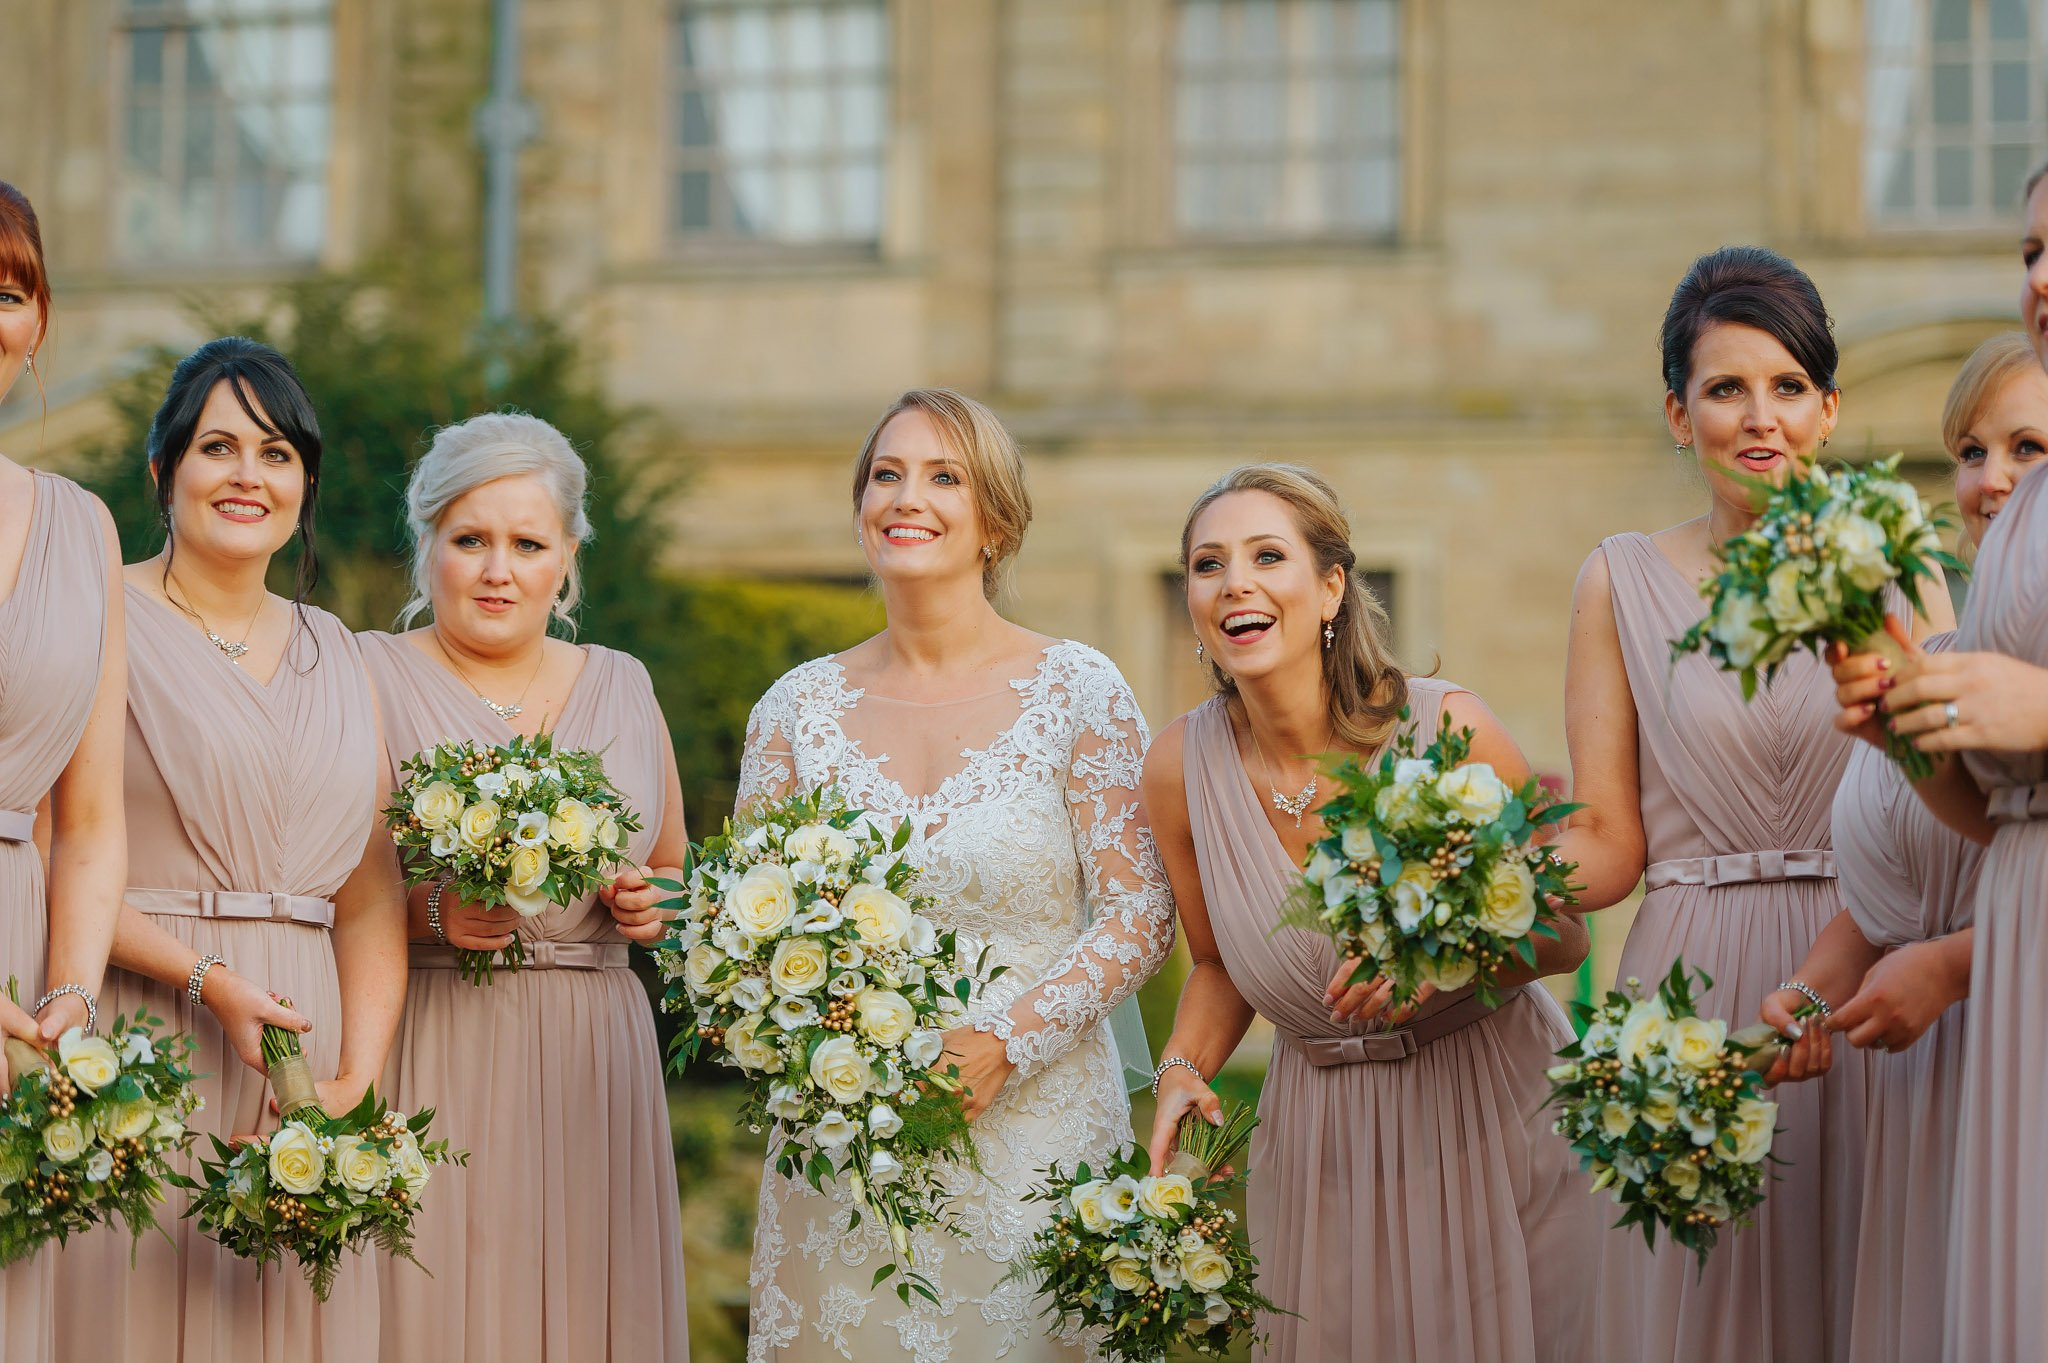 Coombe Abbey wedding in Coventry, Warwickshire - Sam + Matt 46